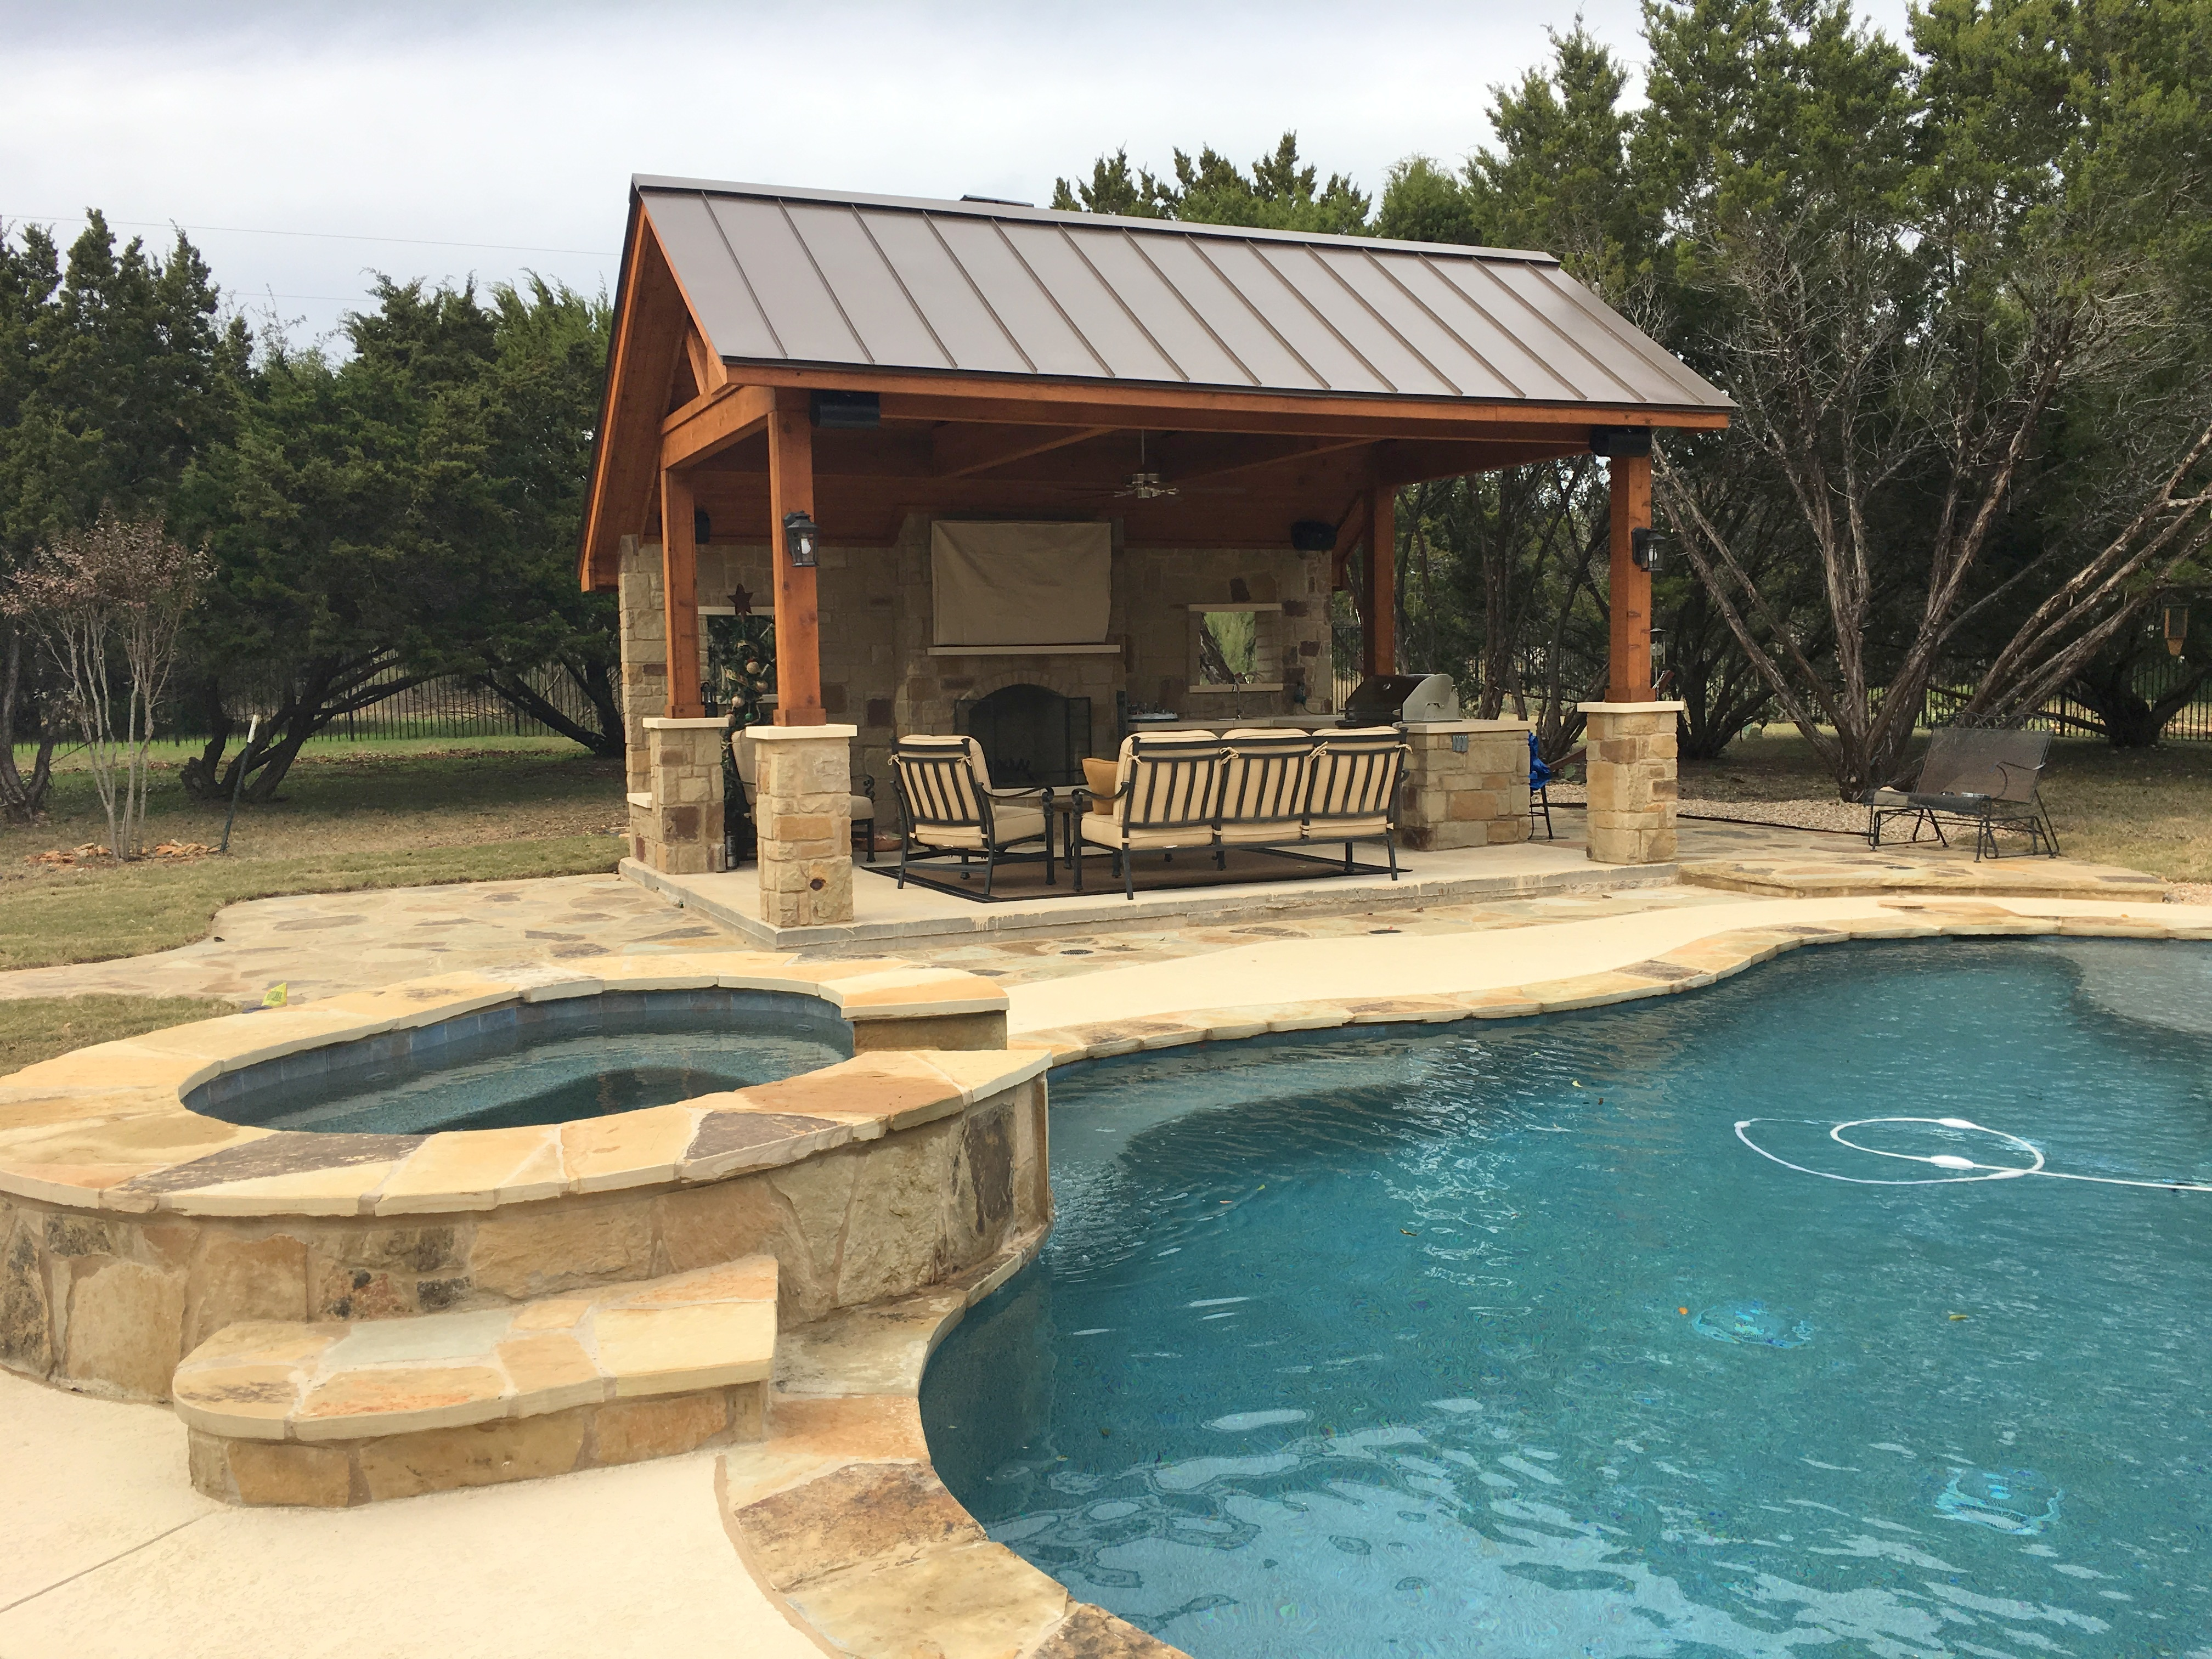 Leander tx pool cabana builder austin decks pergolas for Outdoor pool cabana